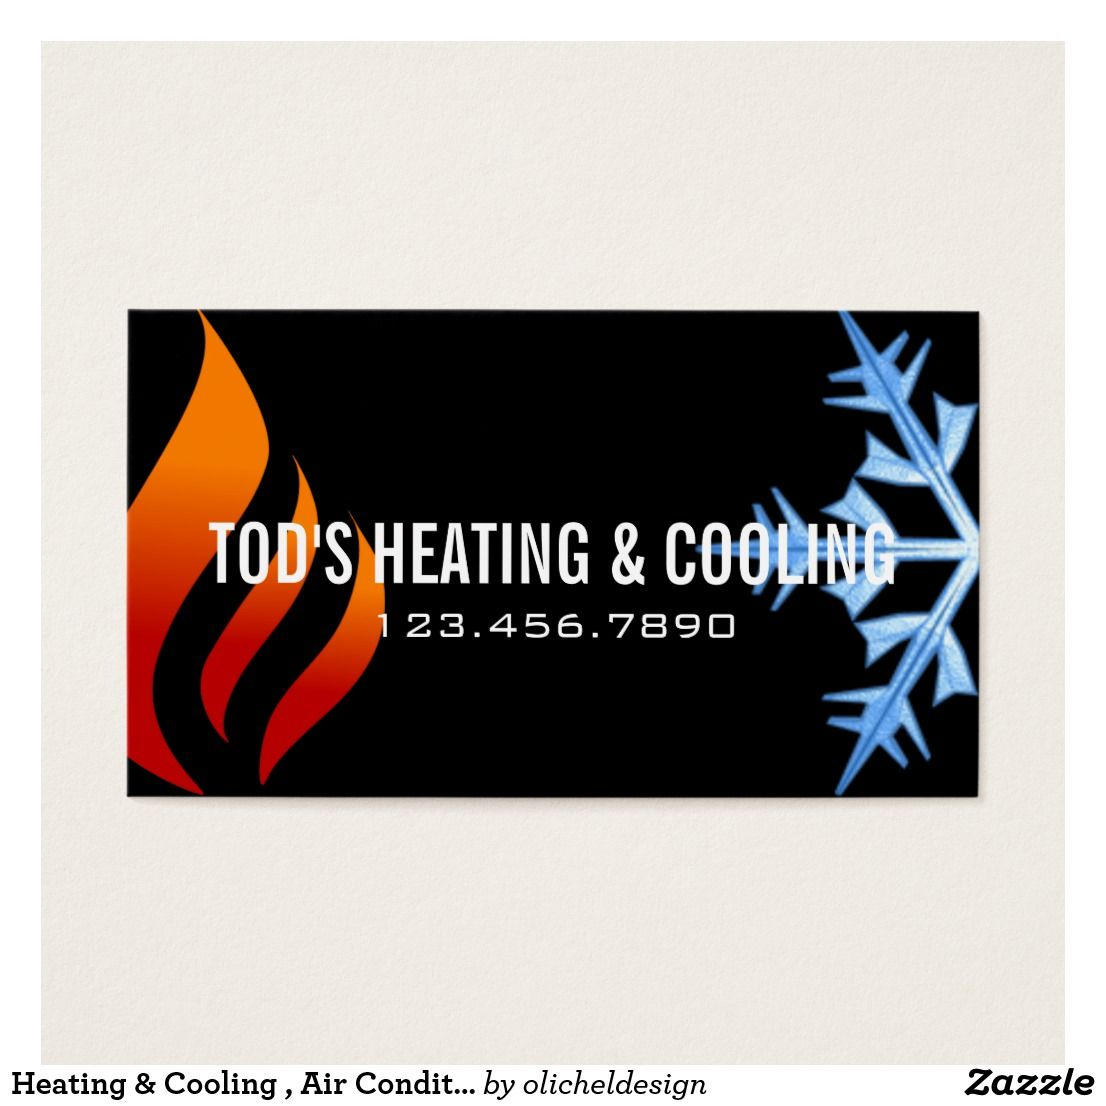 Heating cooling air conditioning hvac business card pinterest heating cooling air conditioning hvac business card reheart Images